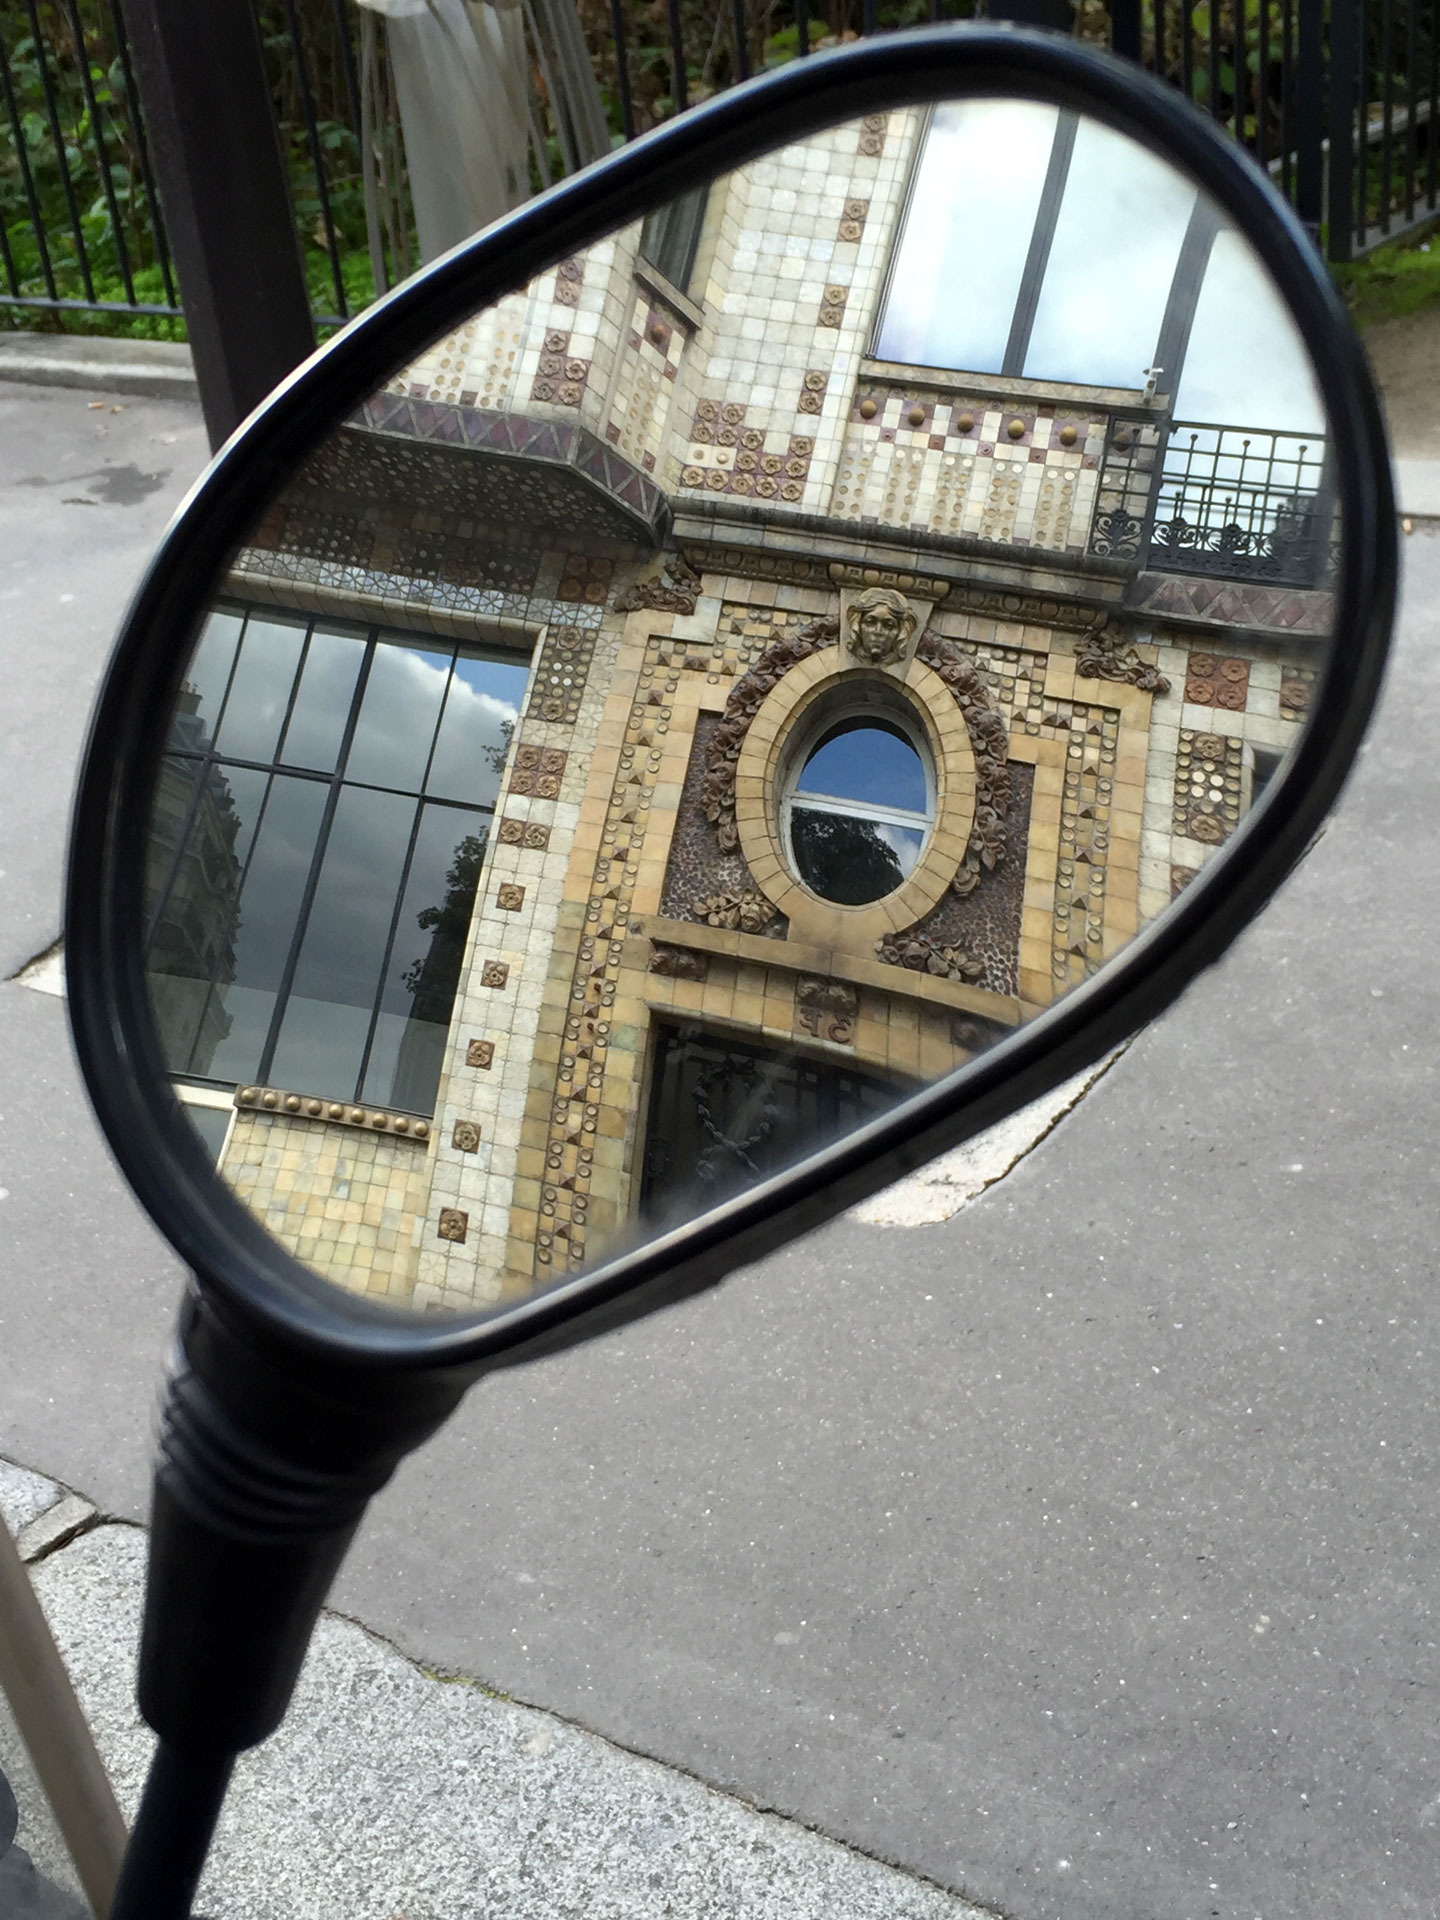 Paris reflections in a mirror